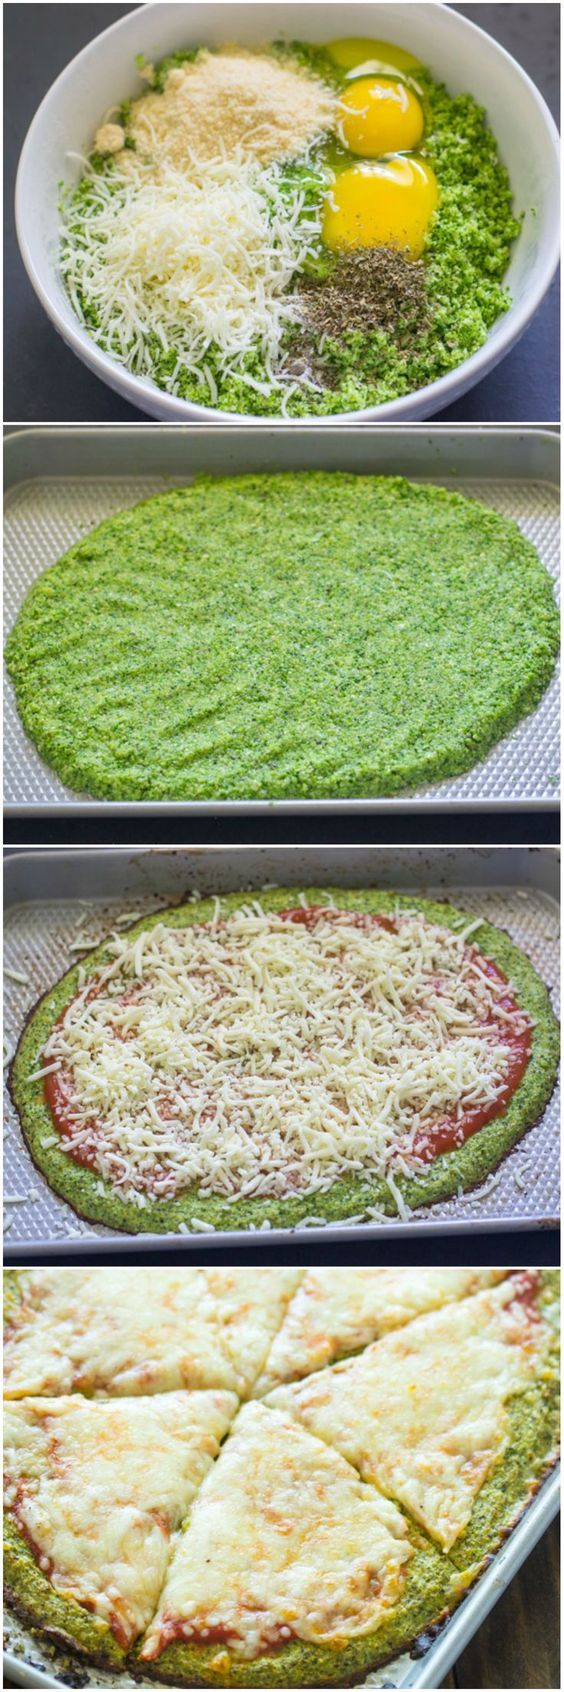 ~~~great idea! Y i didn't think of broccoli after my Chef Son made the cauliflower crust, I'll never know ~~~  Broccoli Crust Pizza